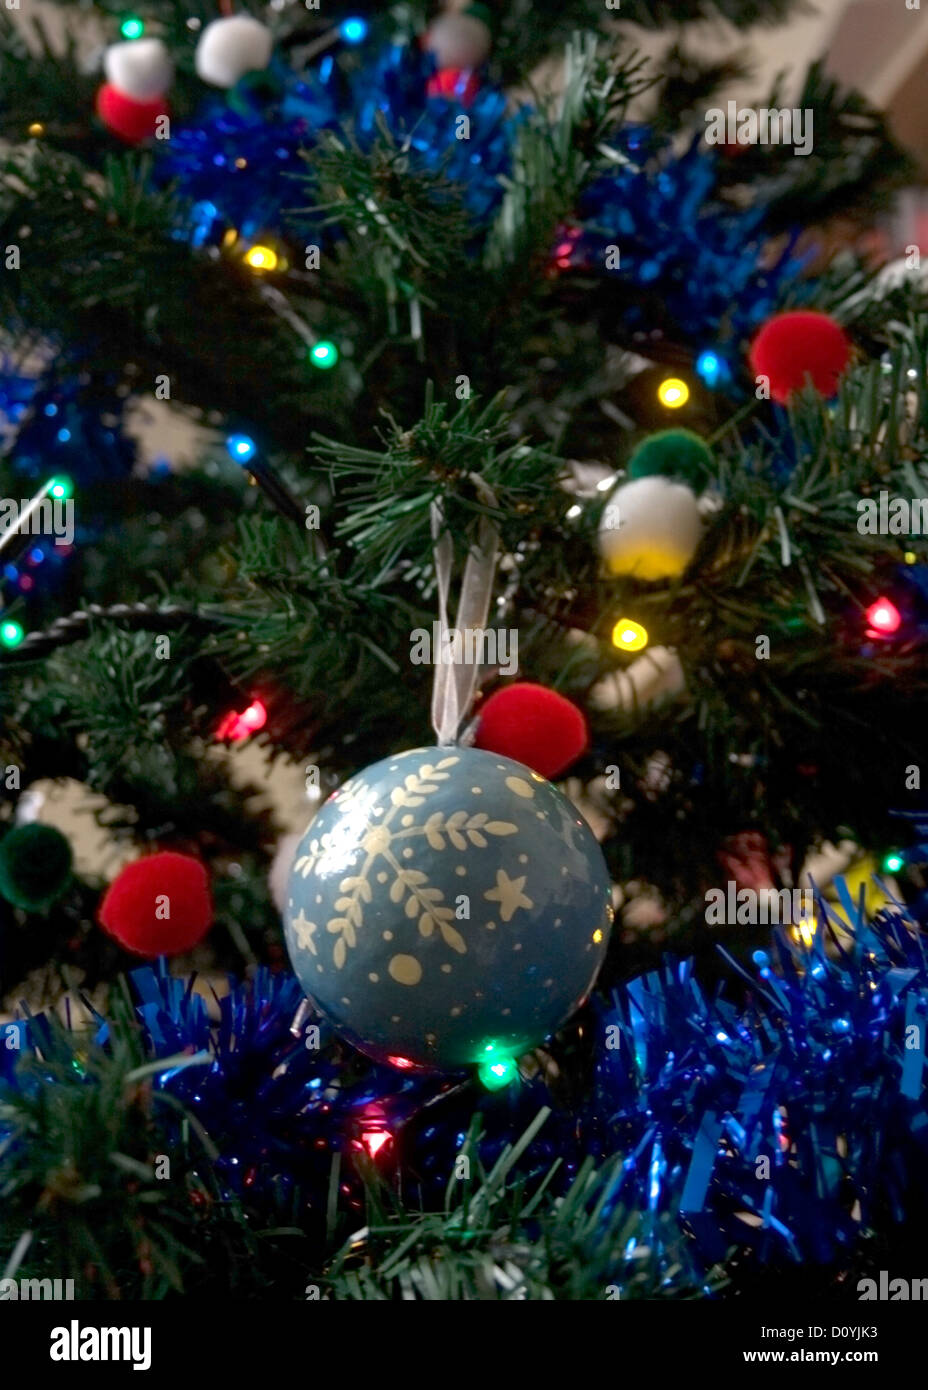 Snowflake-themed bauble on a Christmas tree decorated elsewhere with tinsel. - Stock Image